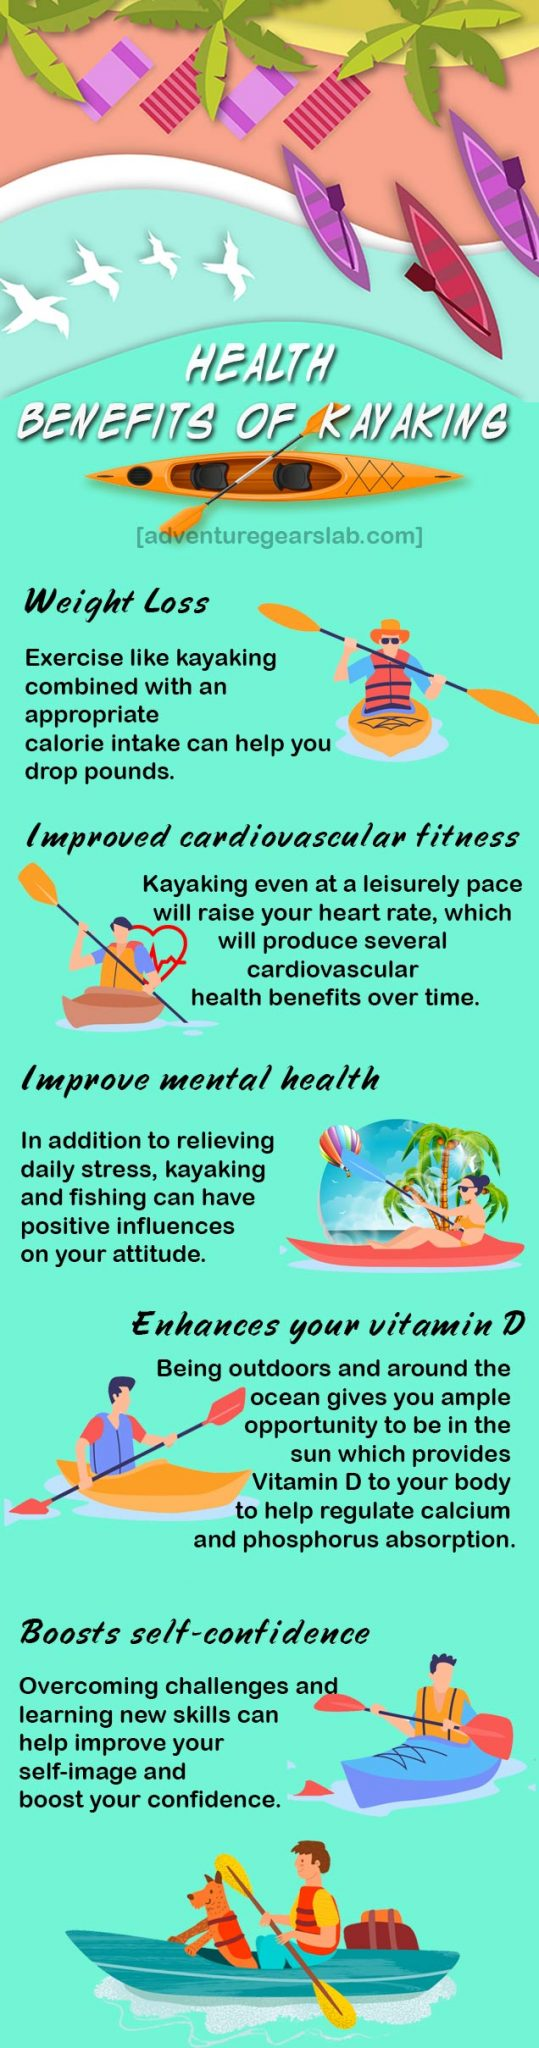 health-benefits-of-kayaking